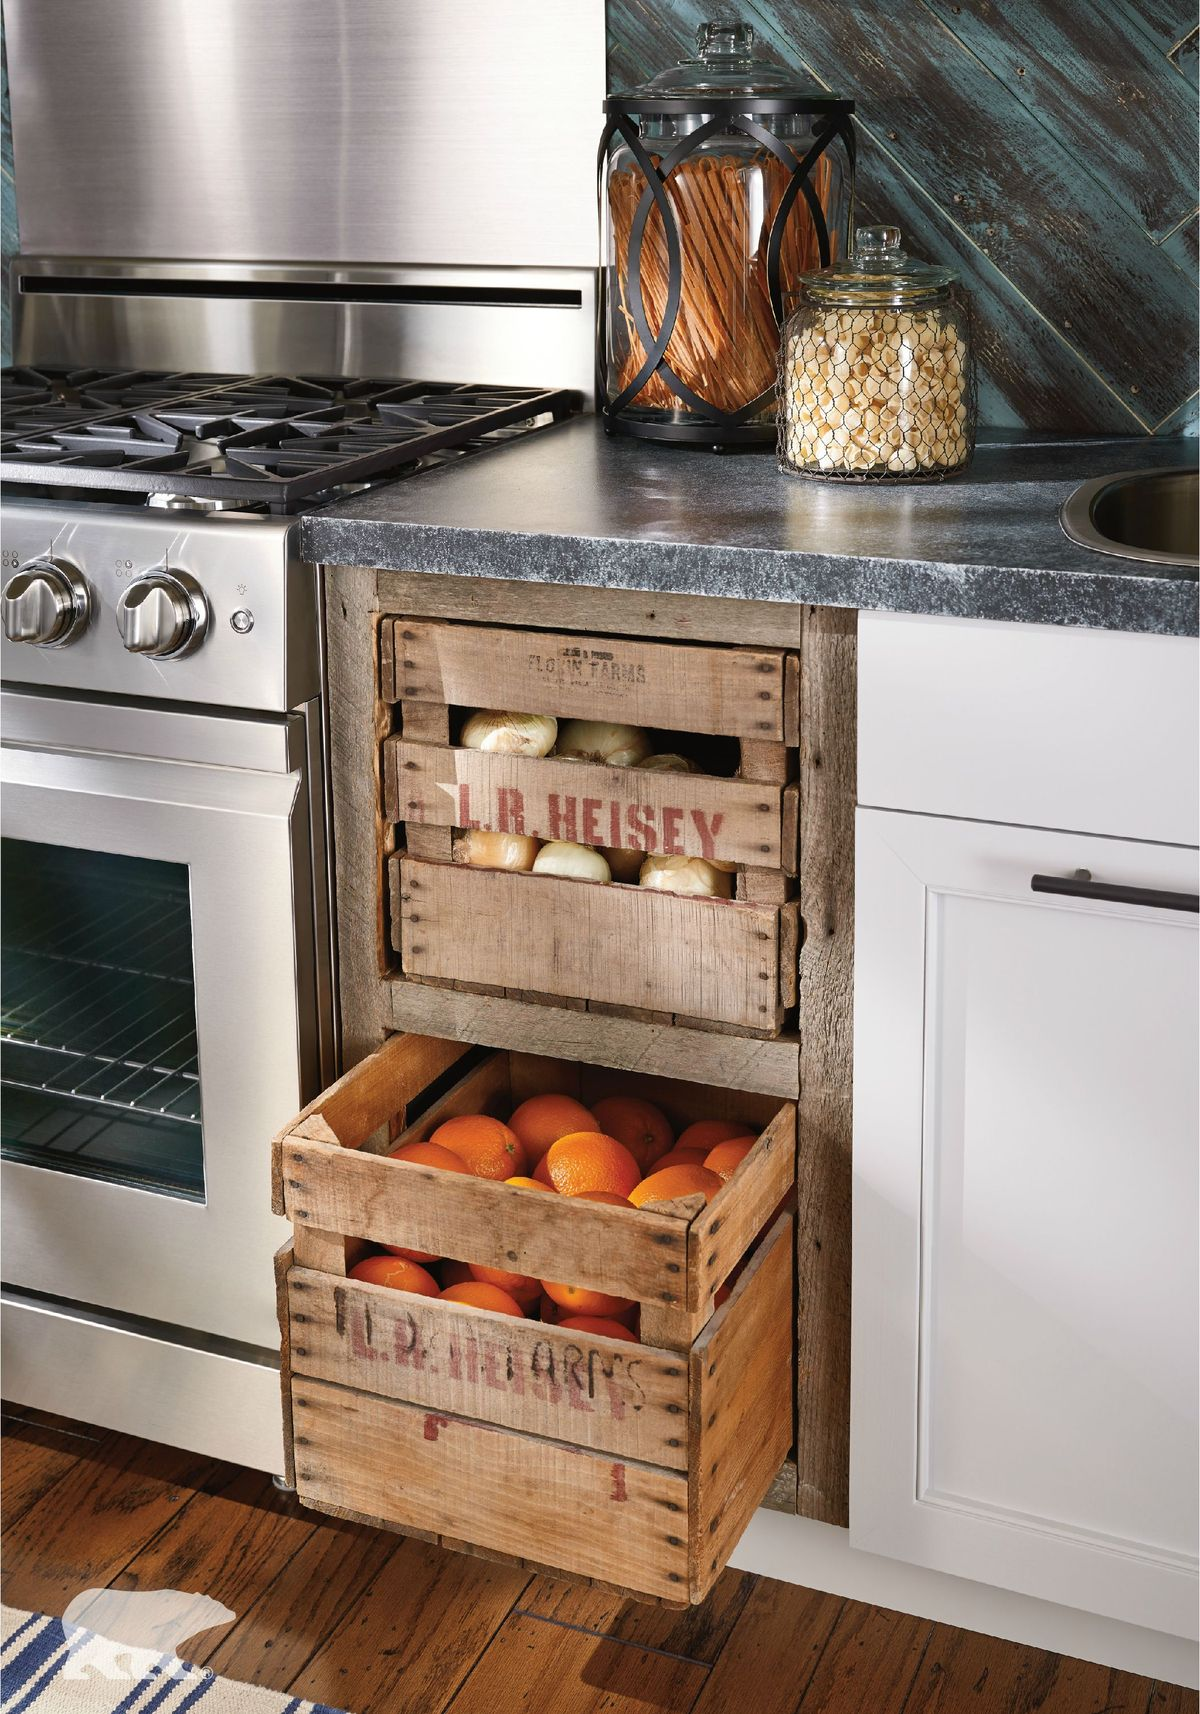 Install Pull-Out Fruit/Vegetable Crates For the Rustic Look